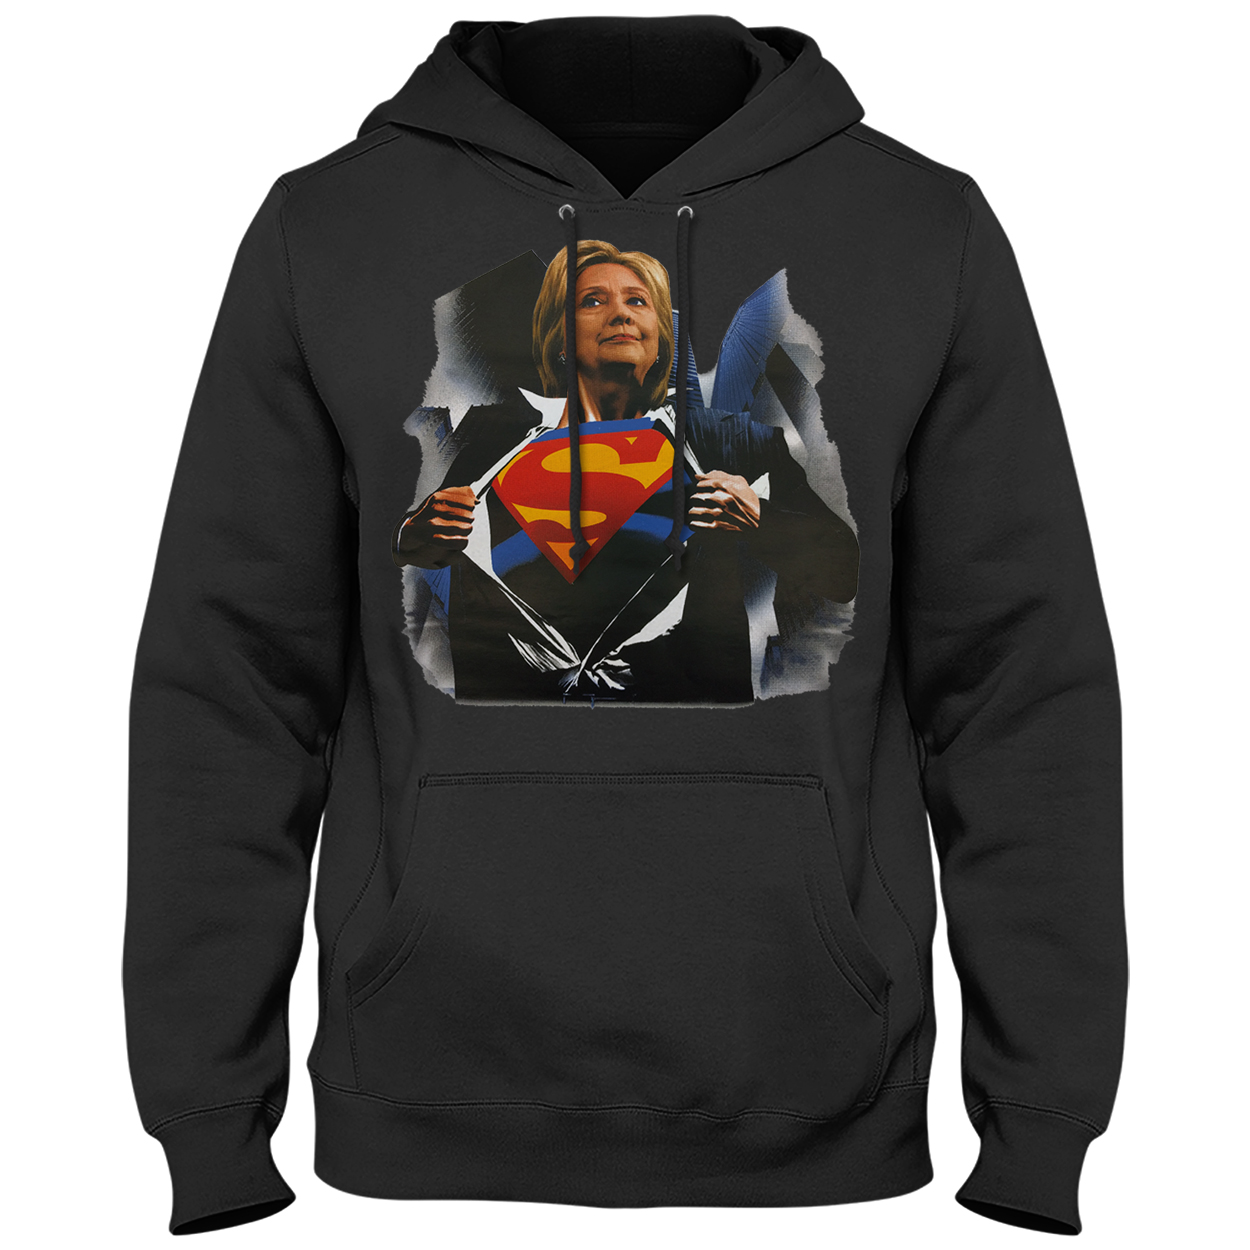 Super Hillary Election 2016 Adult Hoodie